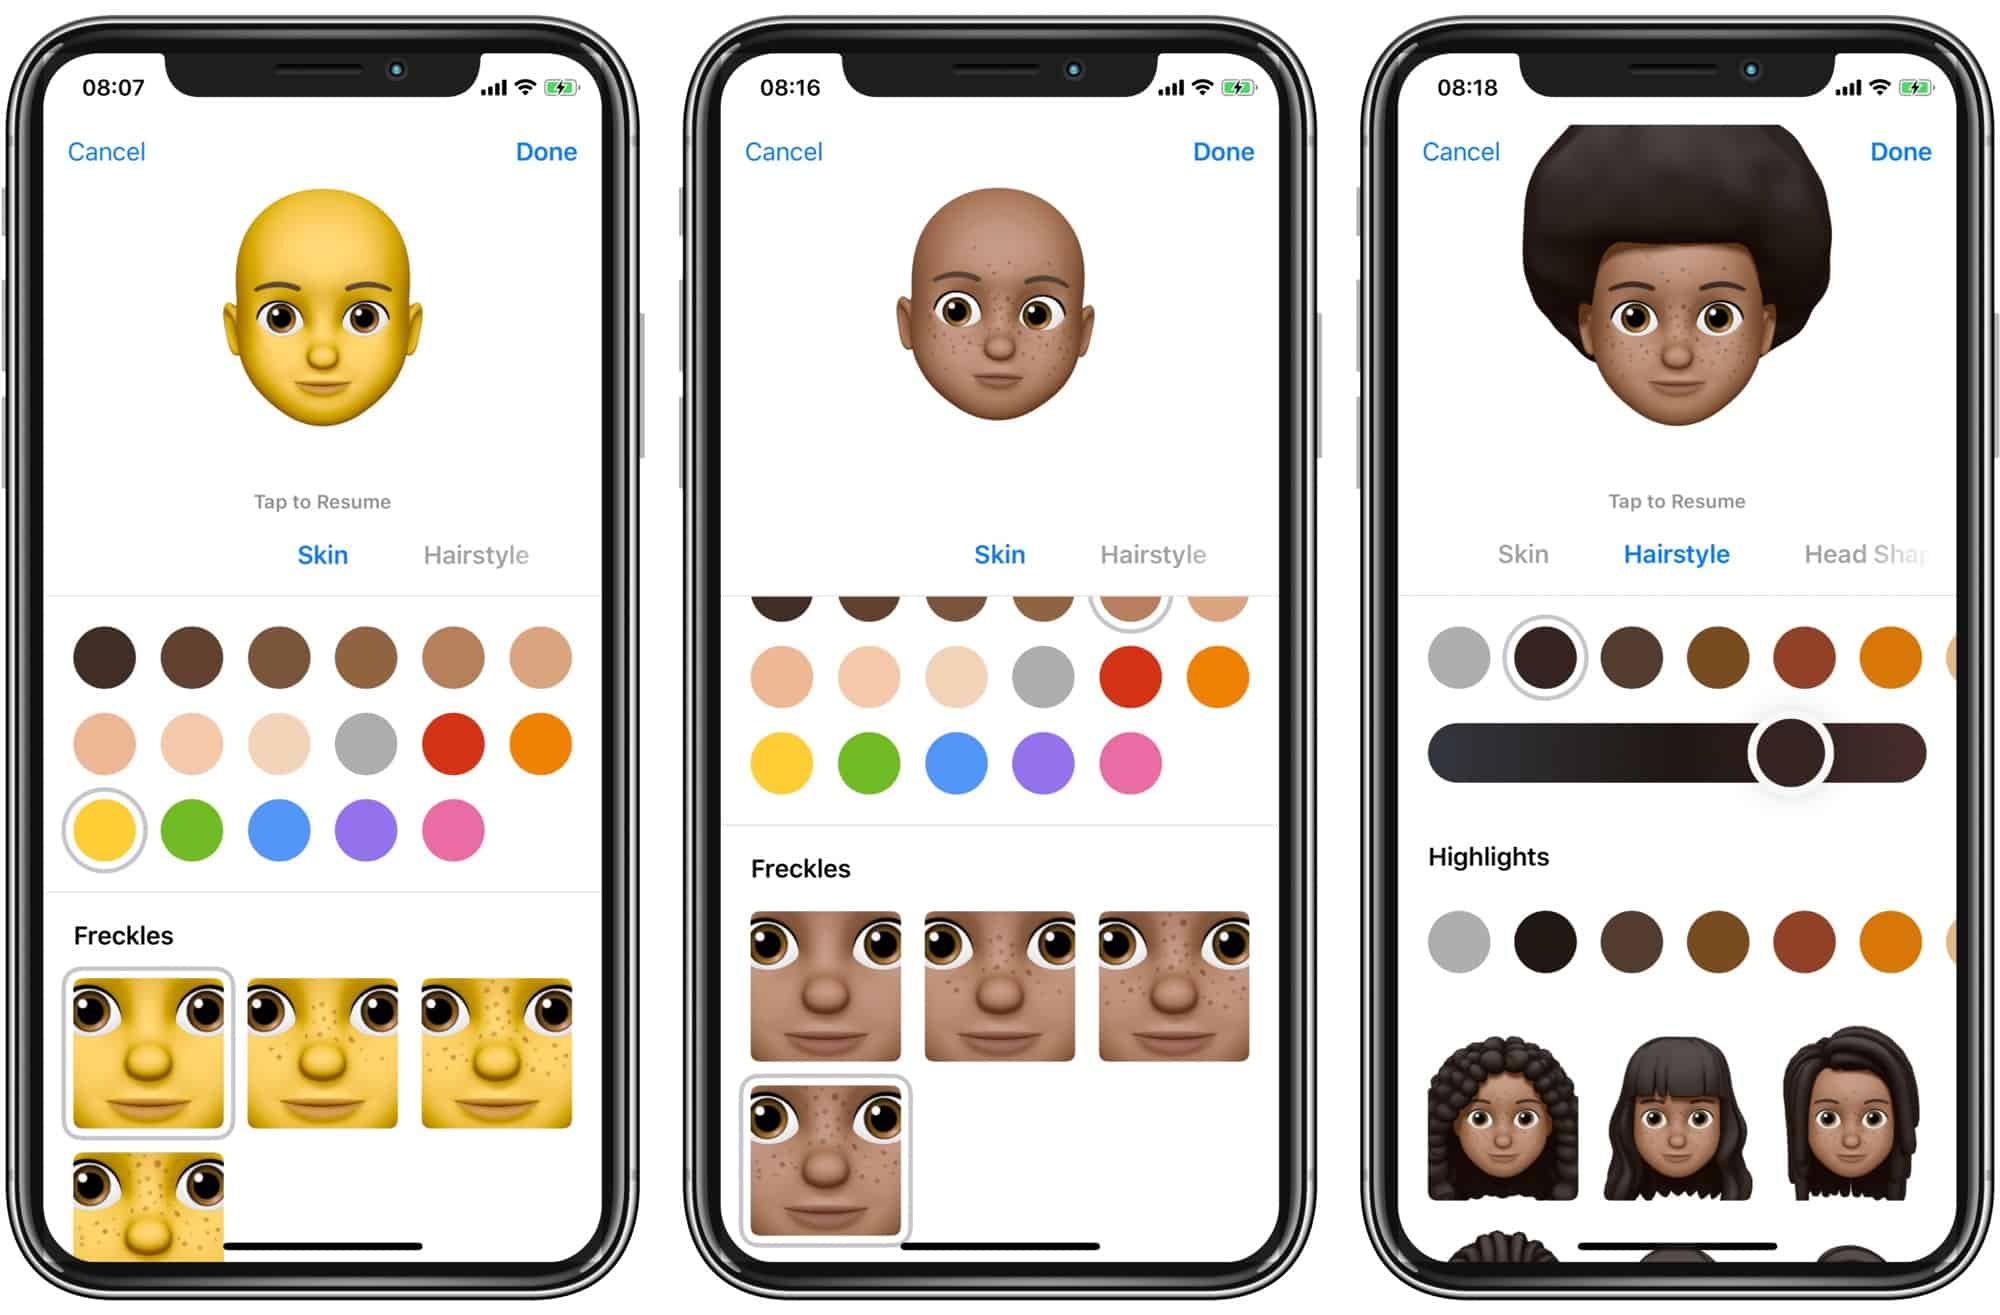 The Memoji editor is both comprehensive and fun.